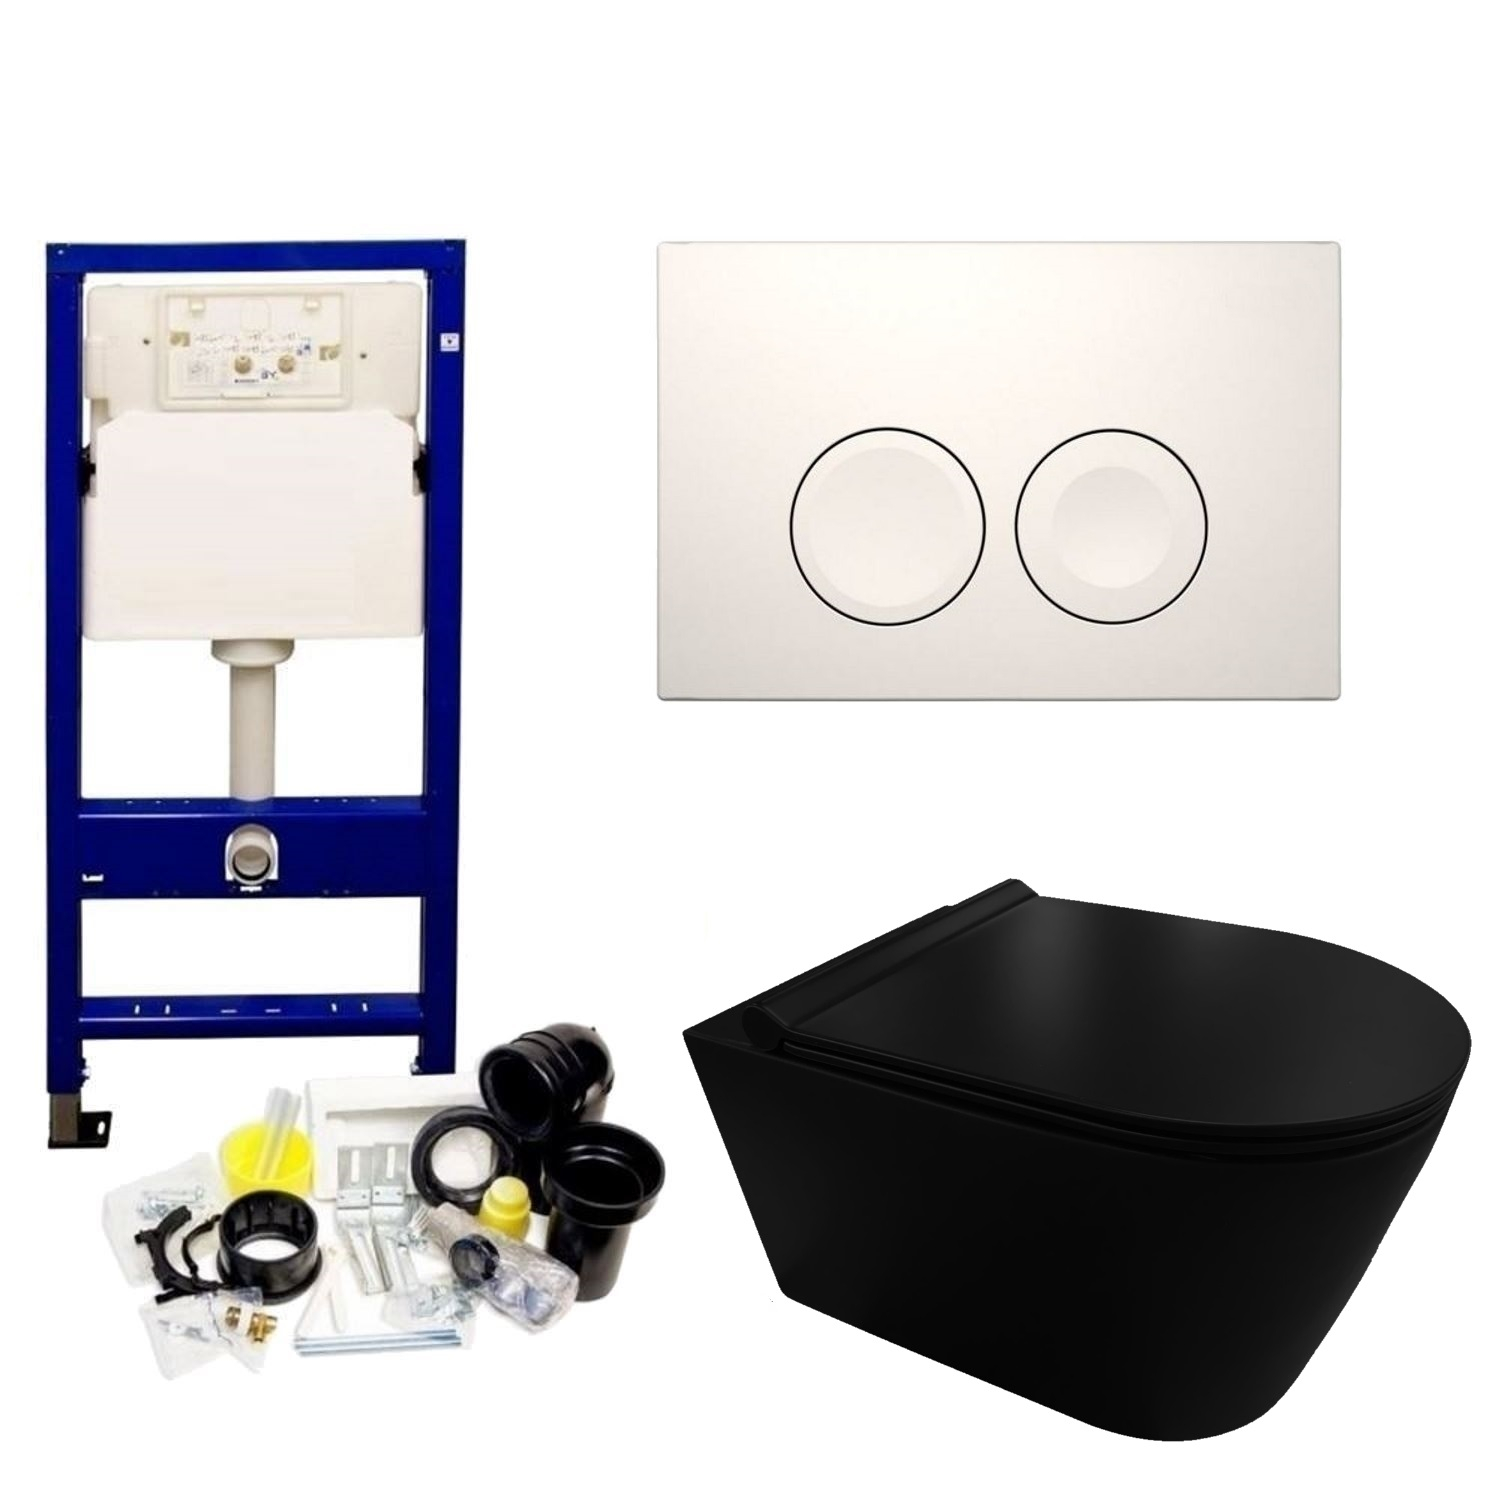 Geberit UP100 Toiletset set44 Civita Black Randloos Mat Zwart Met Delta drukplaat Toilet Toiletset